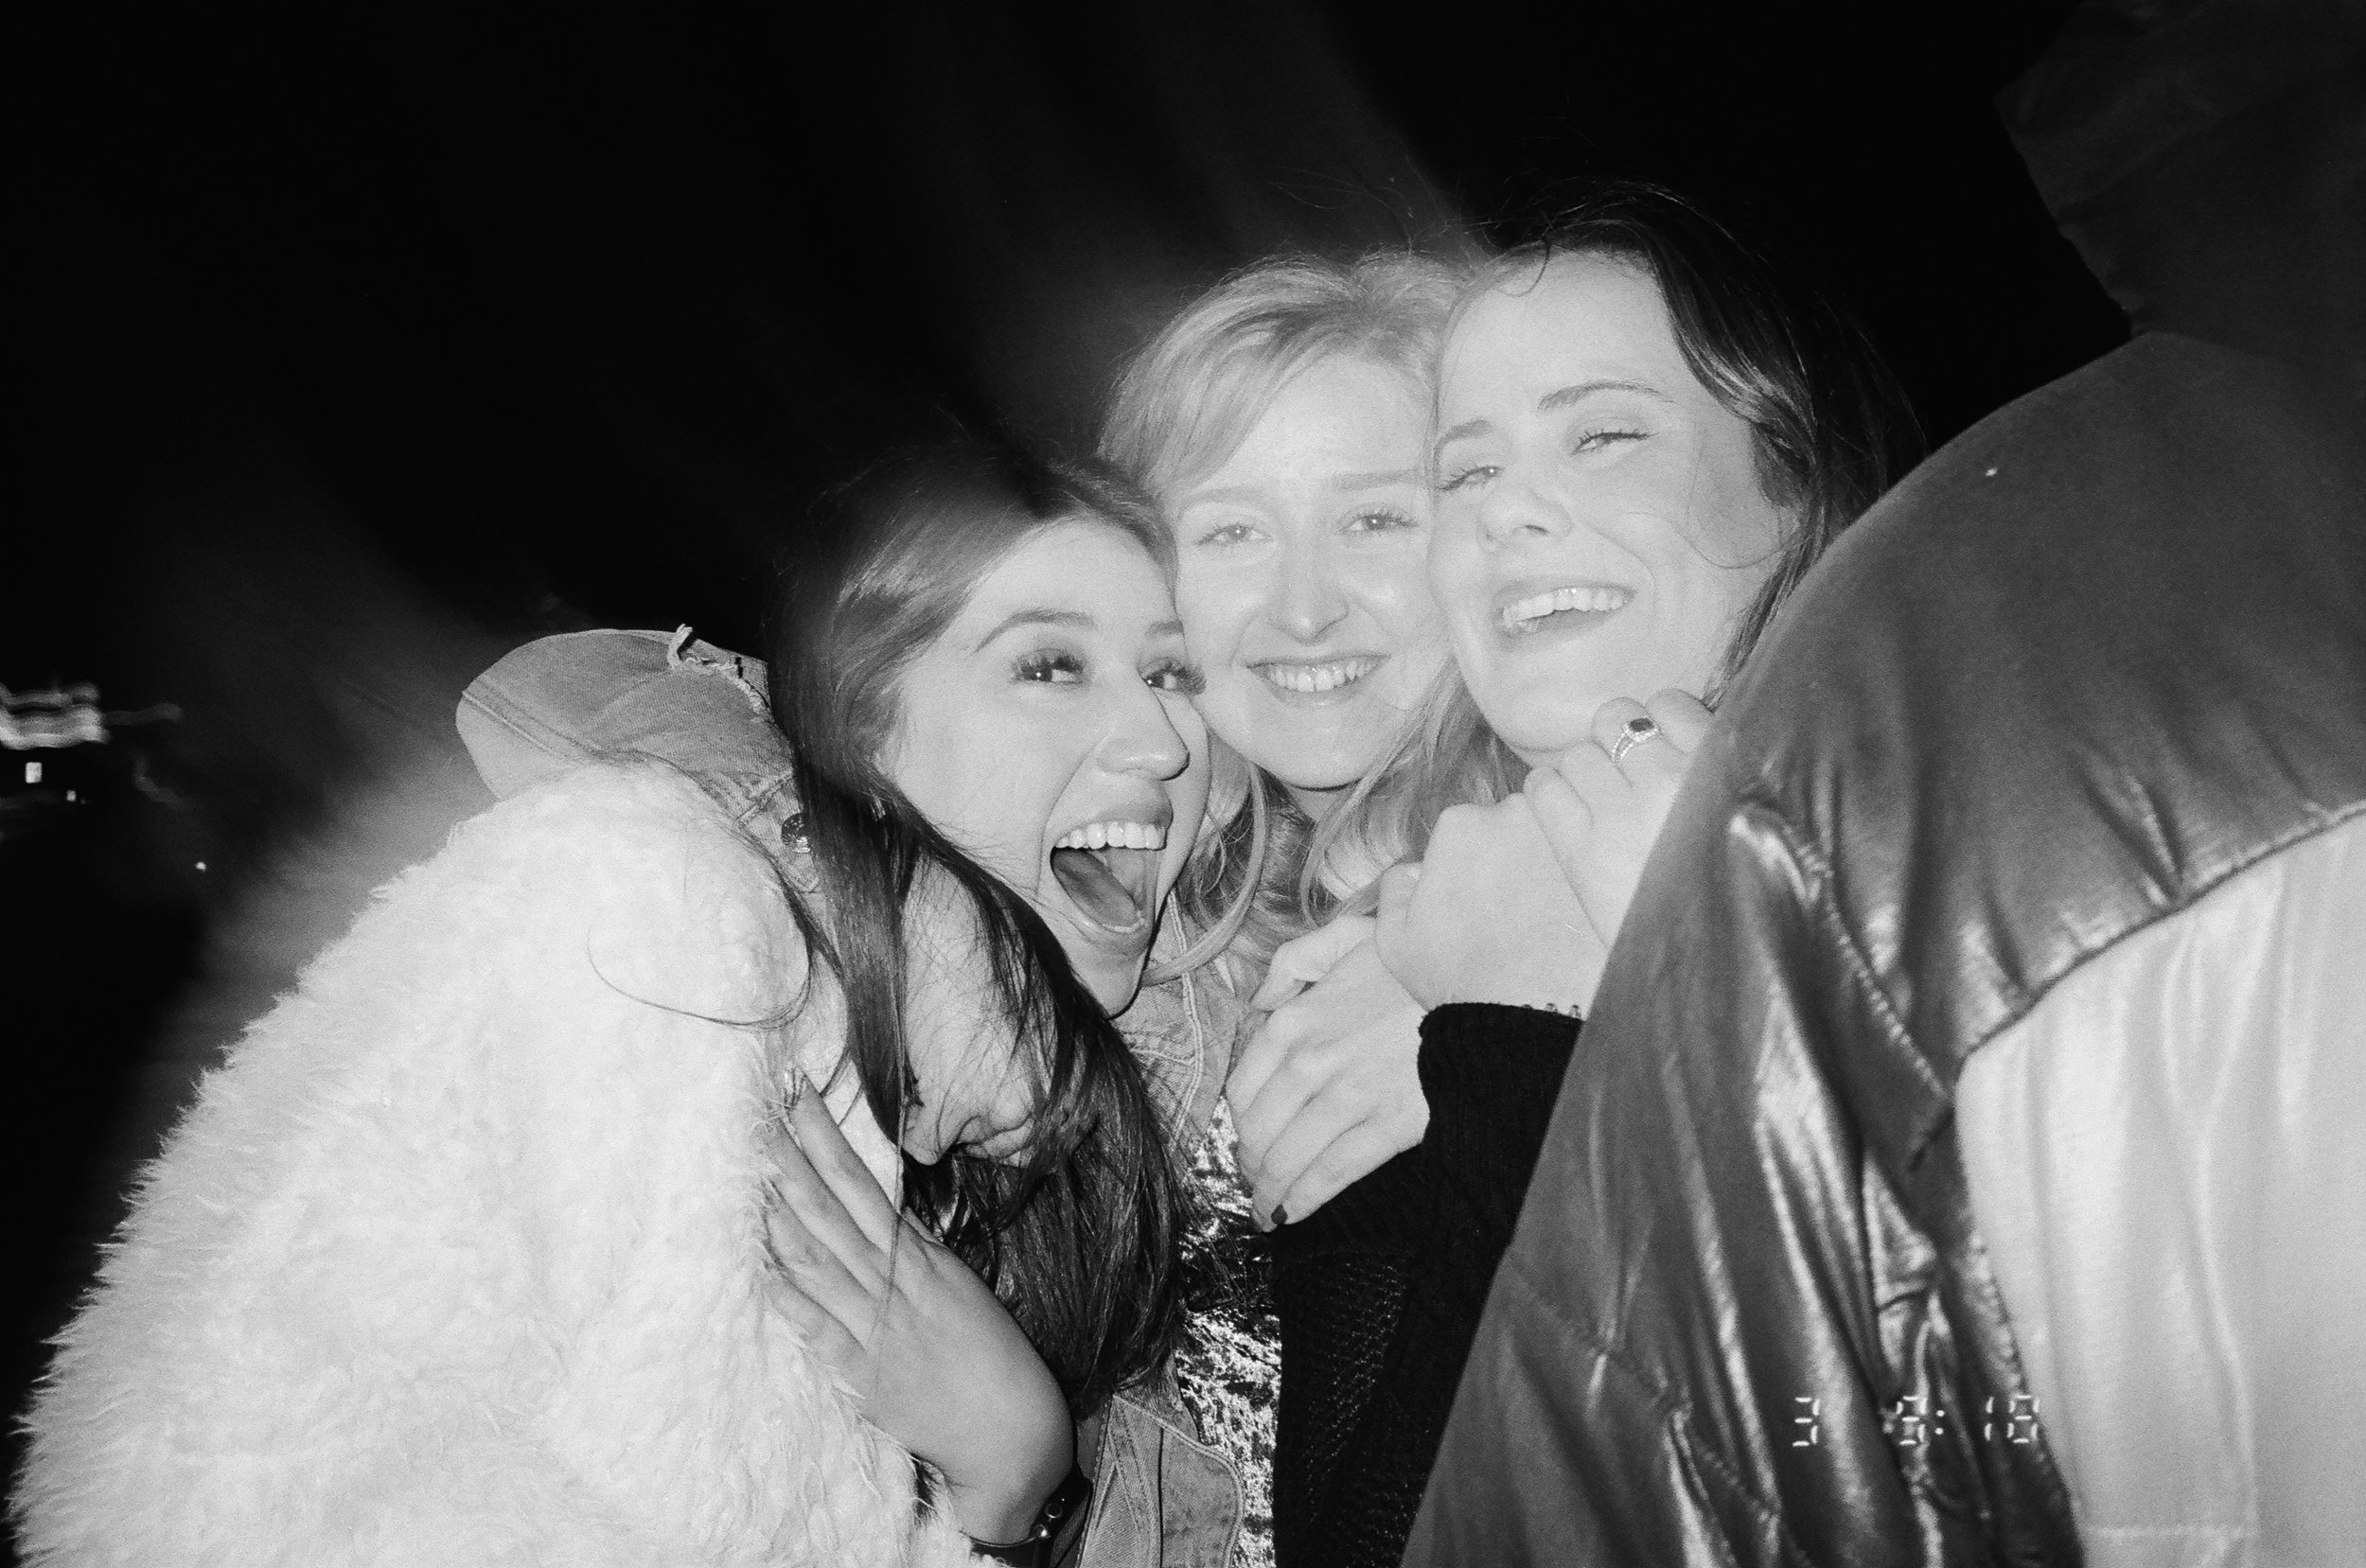 Attached to The Exhilaration of Youth  is a series of photographs   that incorporates candids and portraits of friends, couples and individuals all shot during the last year of college in Flagstaff, AZ.